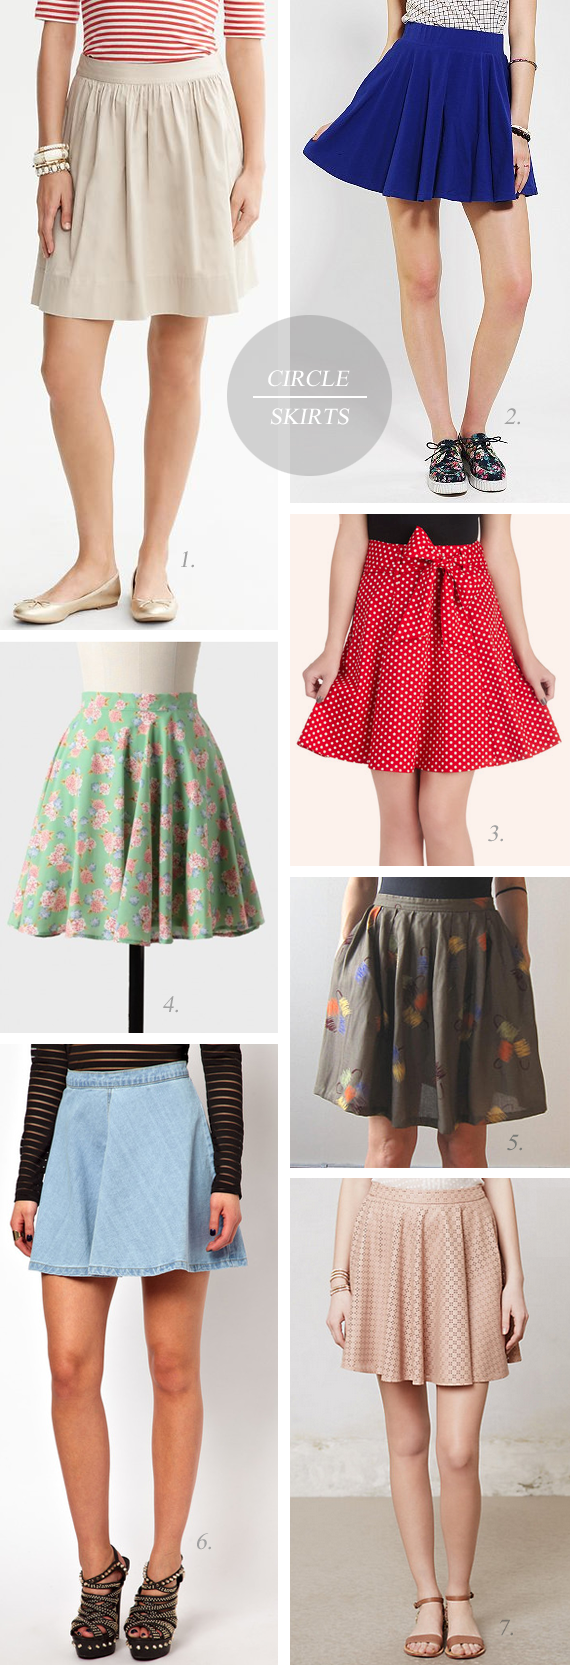 The Short Circle Skirt // Bubby and Bean